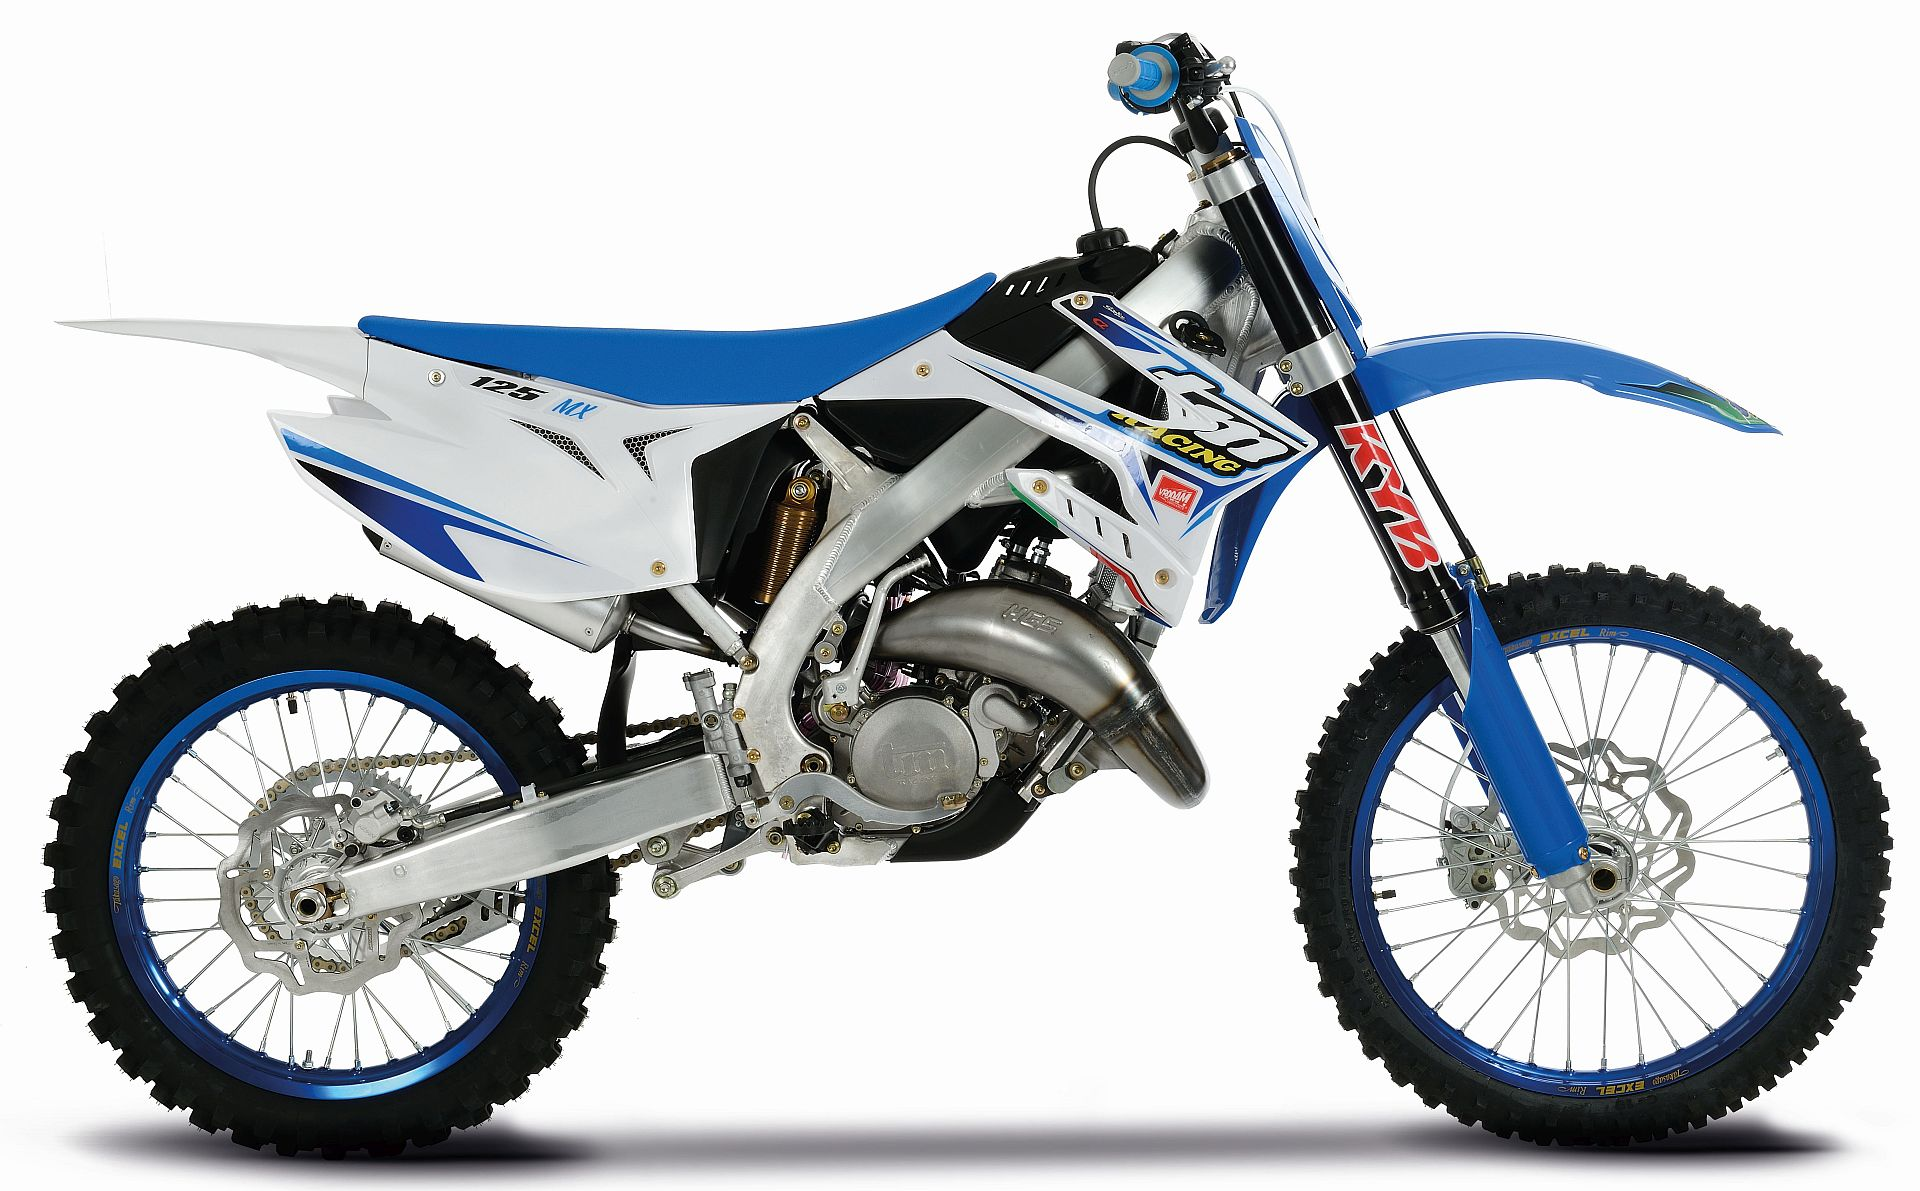 Small Kawasaki Dirt Bike